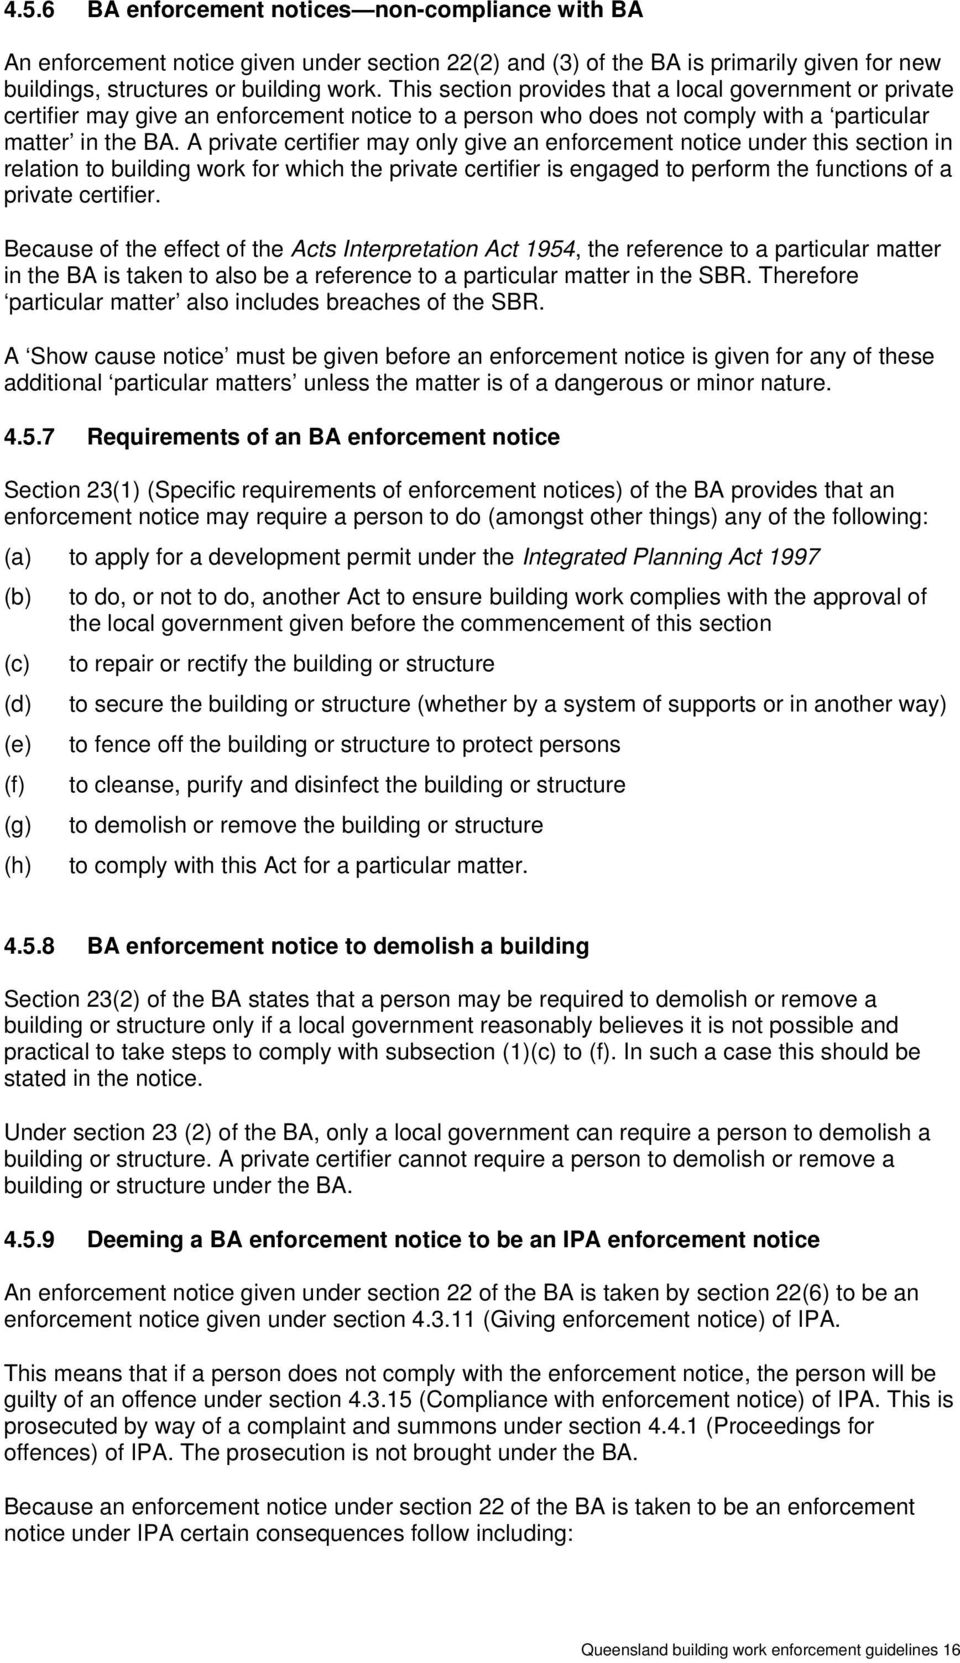 A private certifier may only give an enforcement notice under this section in relation to building work for which the private certifier is engaged to perform the functions of a private certifier.